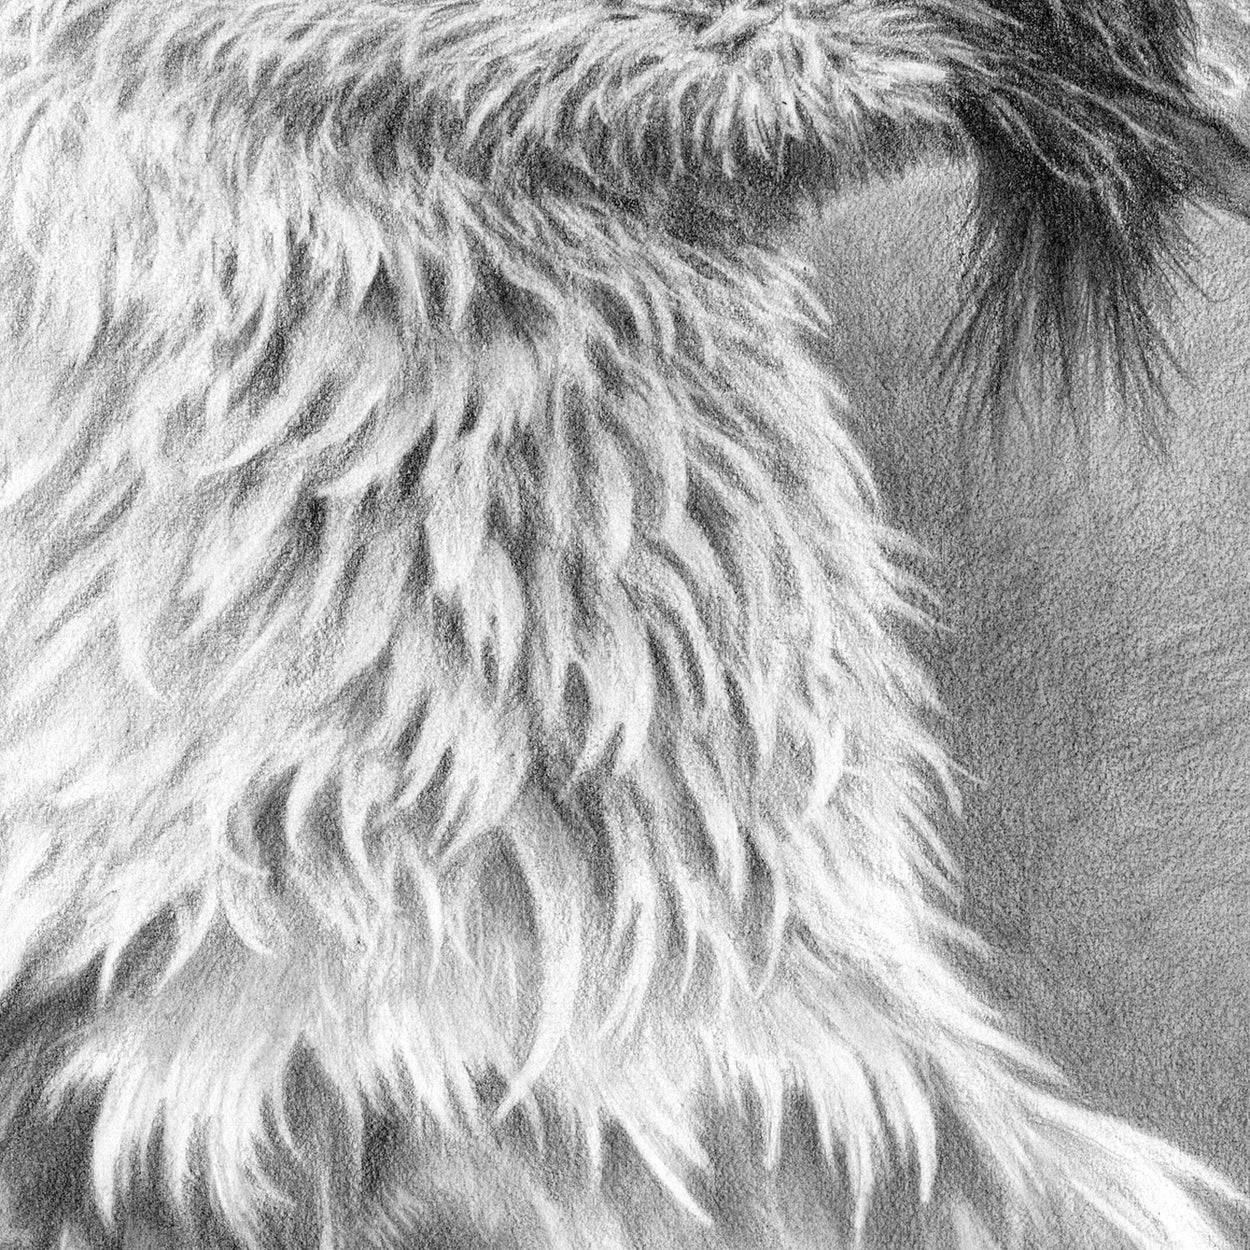 Bearded Vulture Drawing CLose-up 2 - The Thriving Wild - Jill Dimond